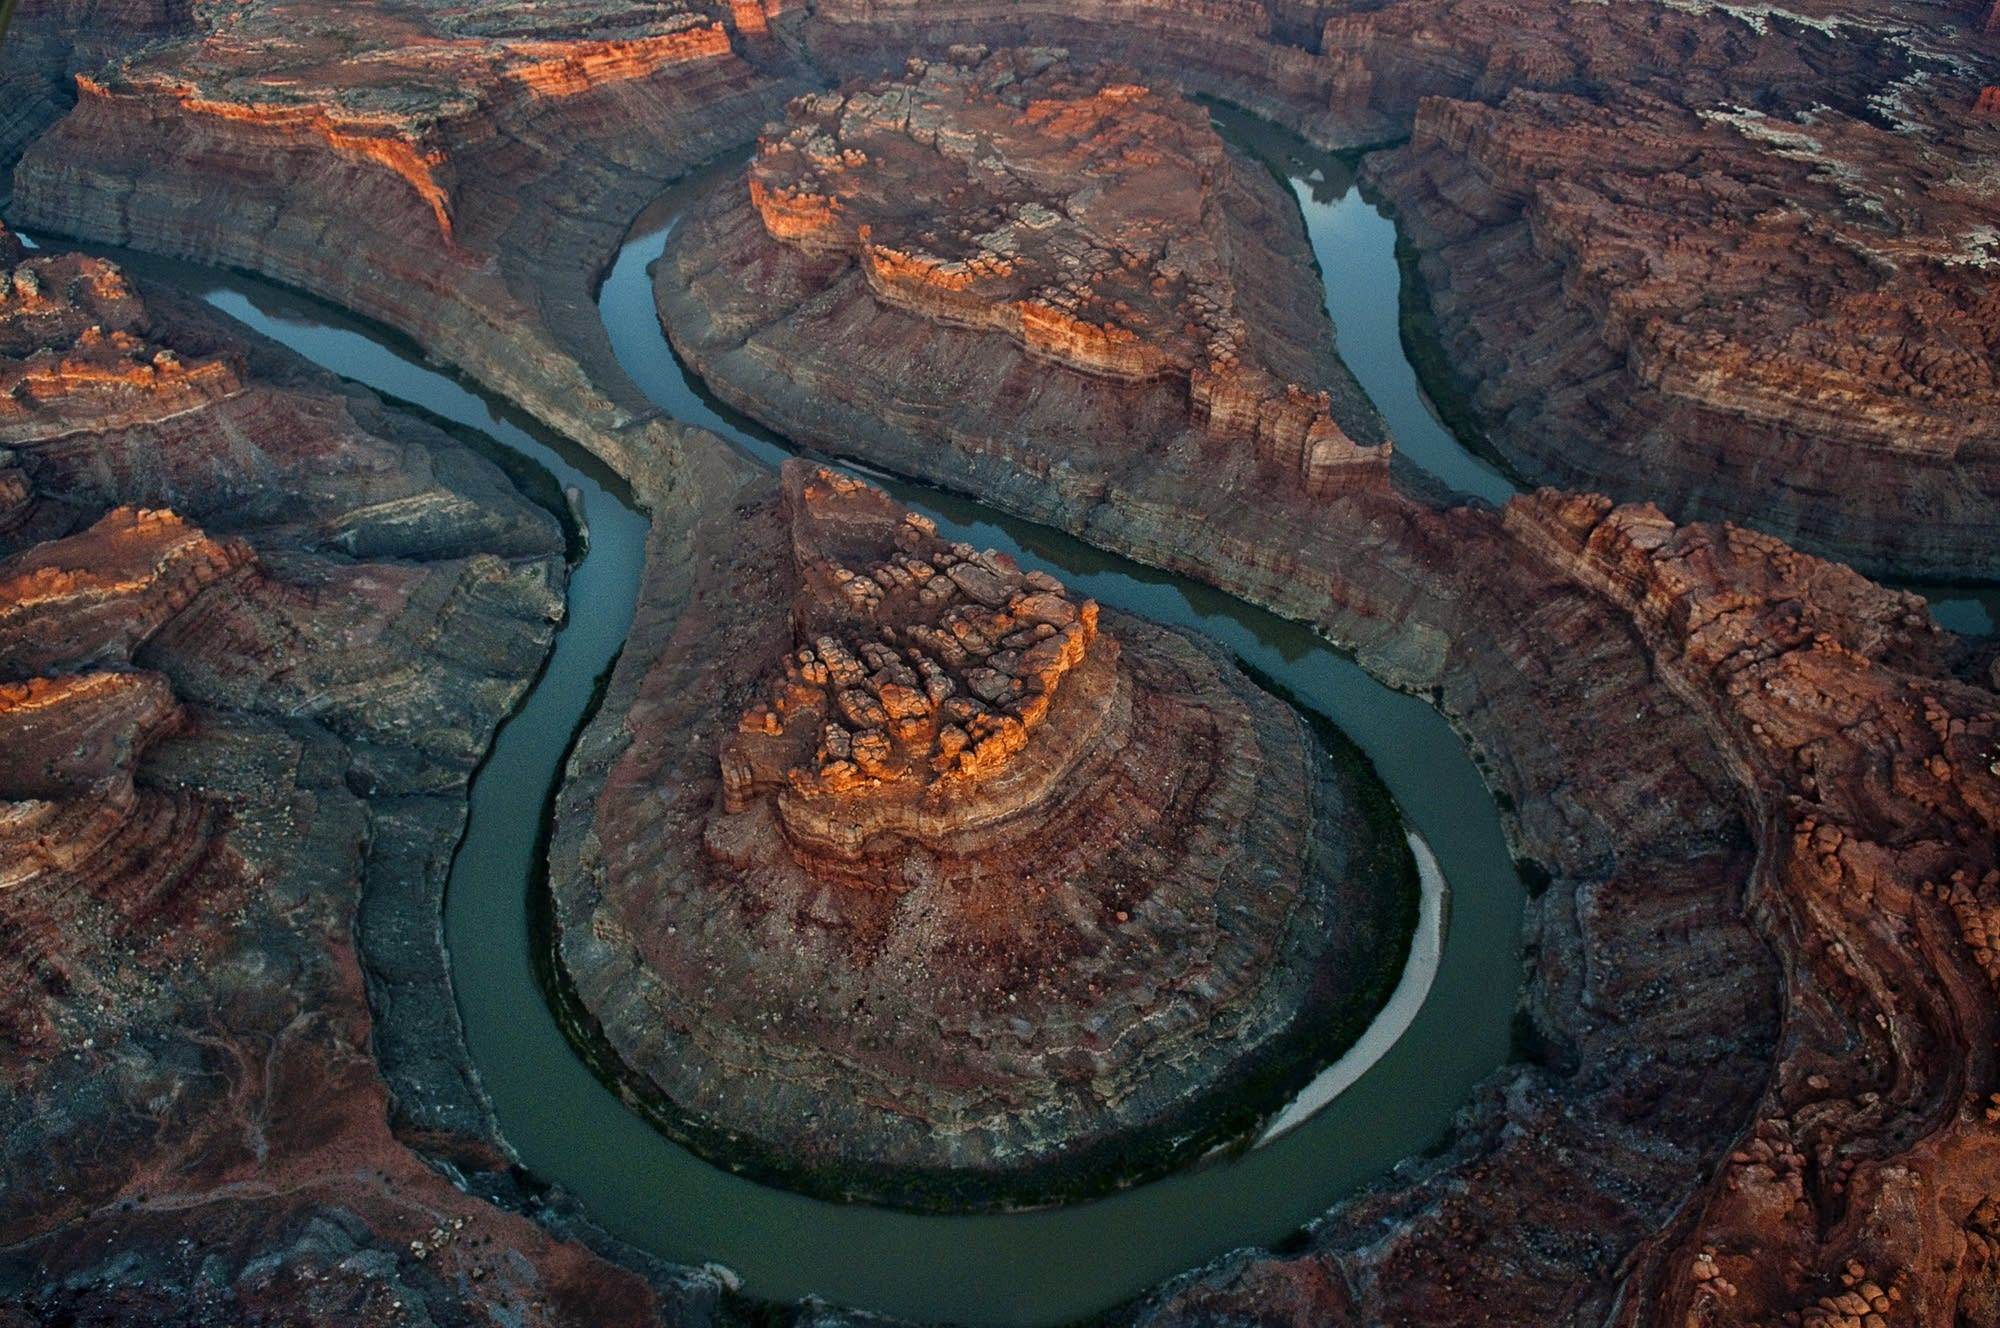 Aerial view at sunrise of the double oxbow 'Loop' in Canyonlands.